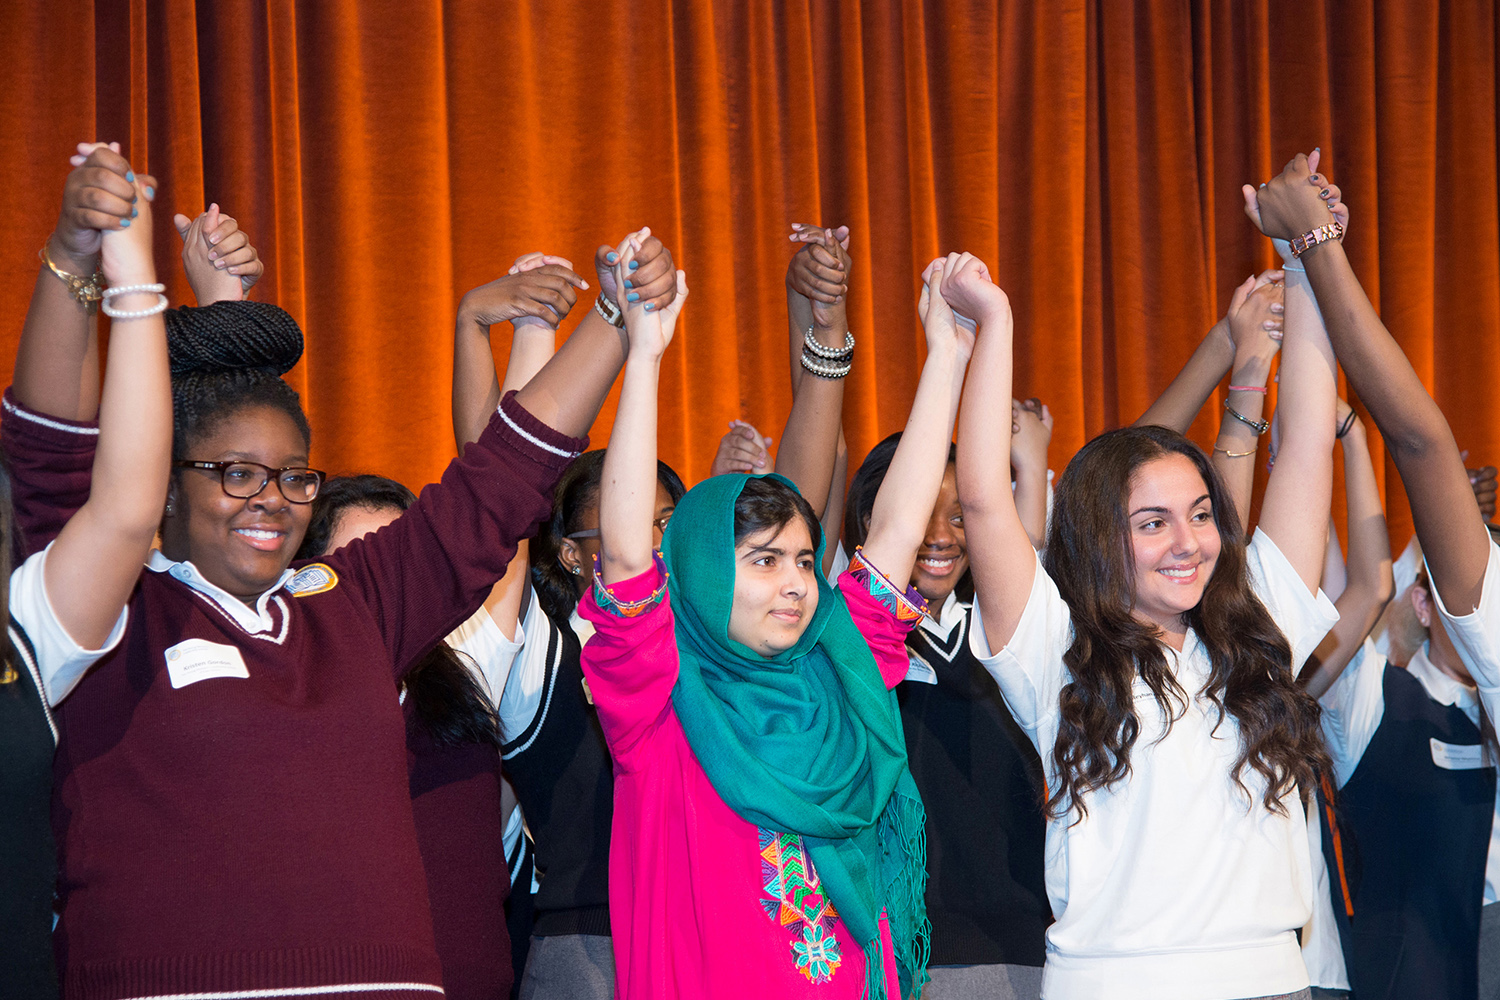 Ben Asen Event Photo: Malala Yousafzai with New York City High School students